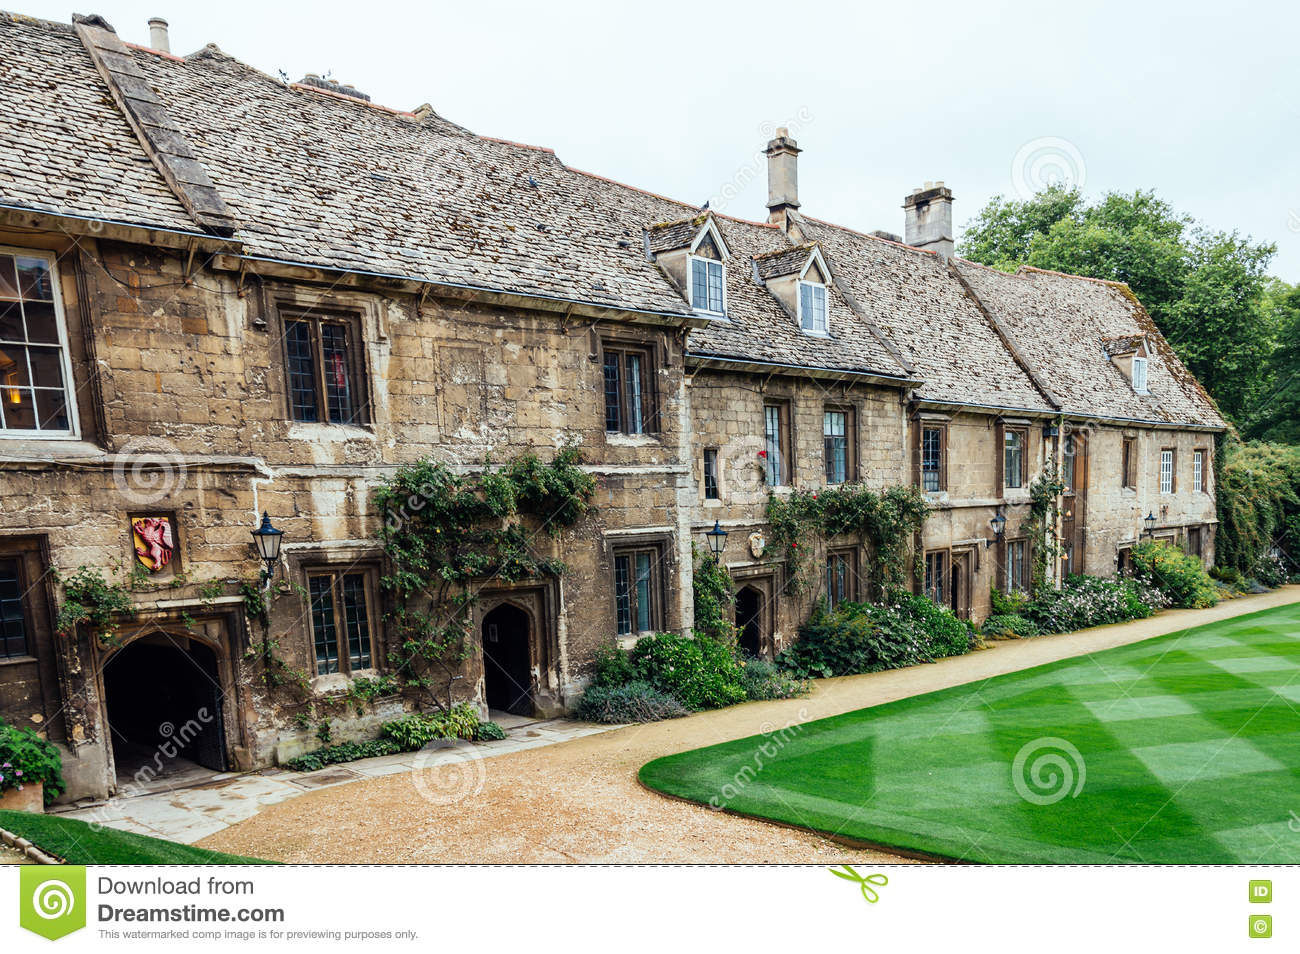 Worcester-College in Oxford